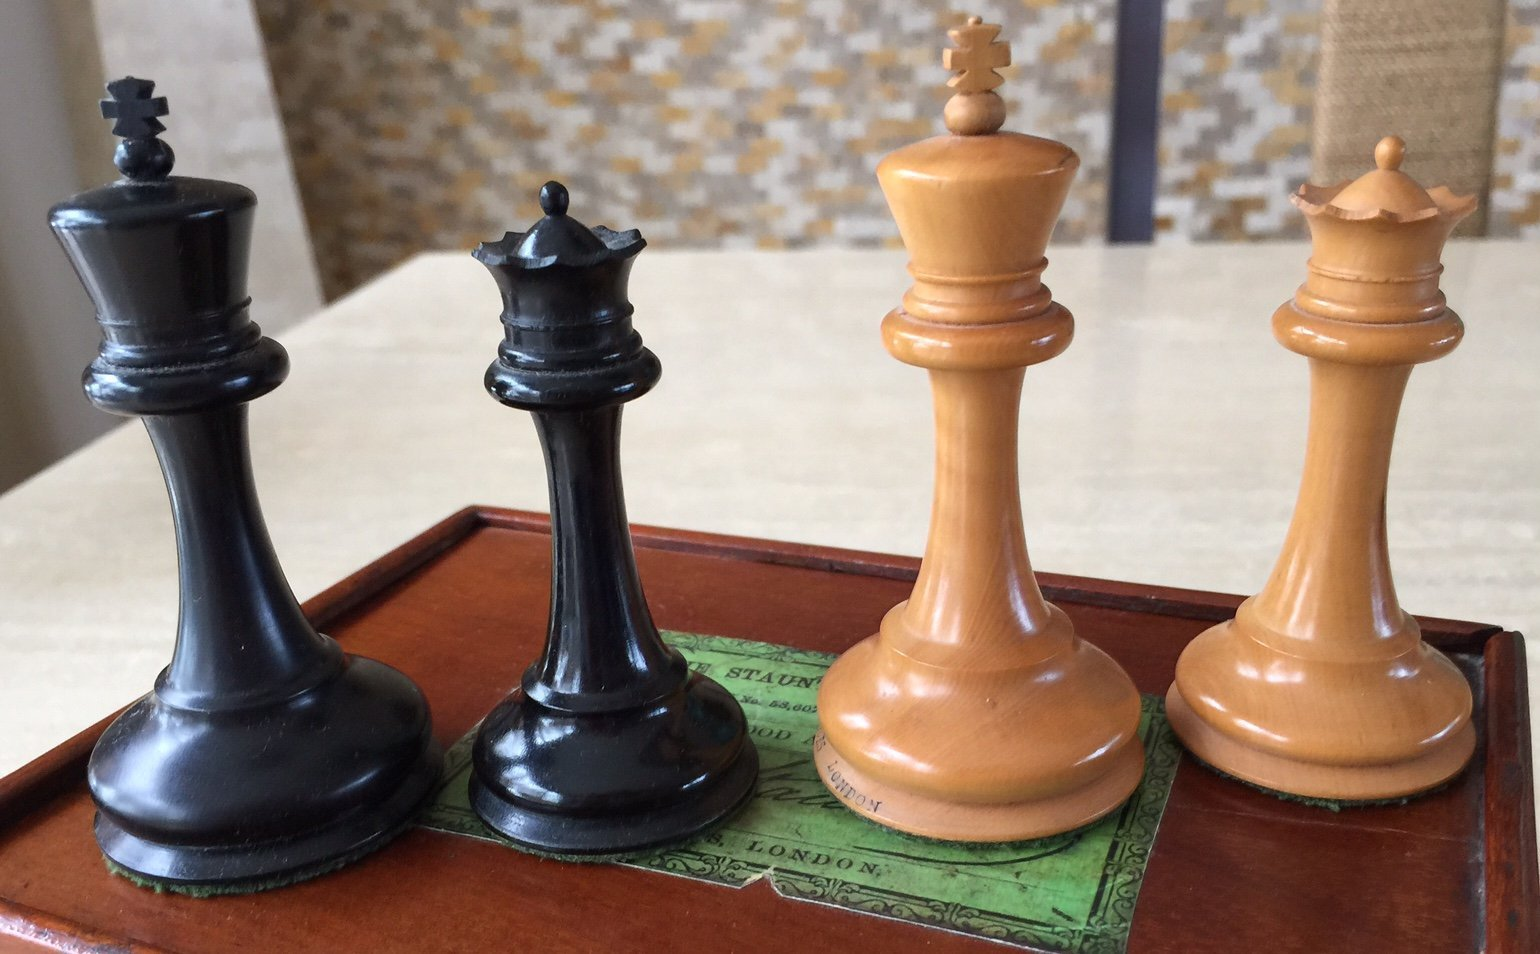 Jaques anderssen staunton antique chess set - Collectible chess sets ...